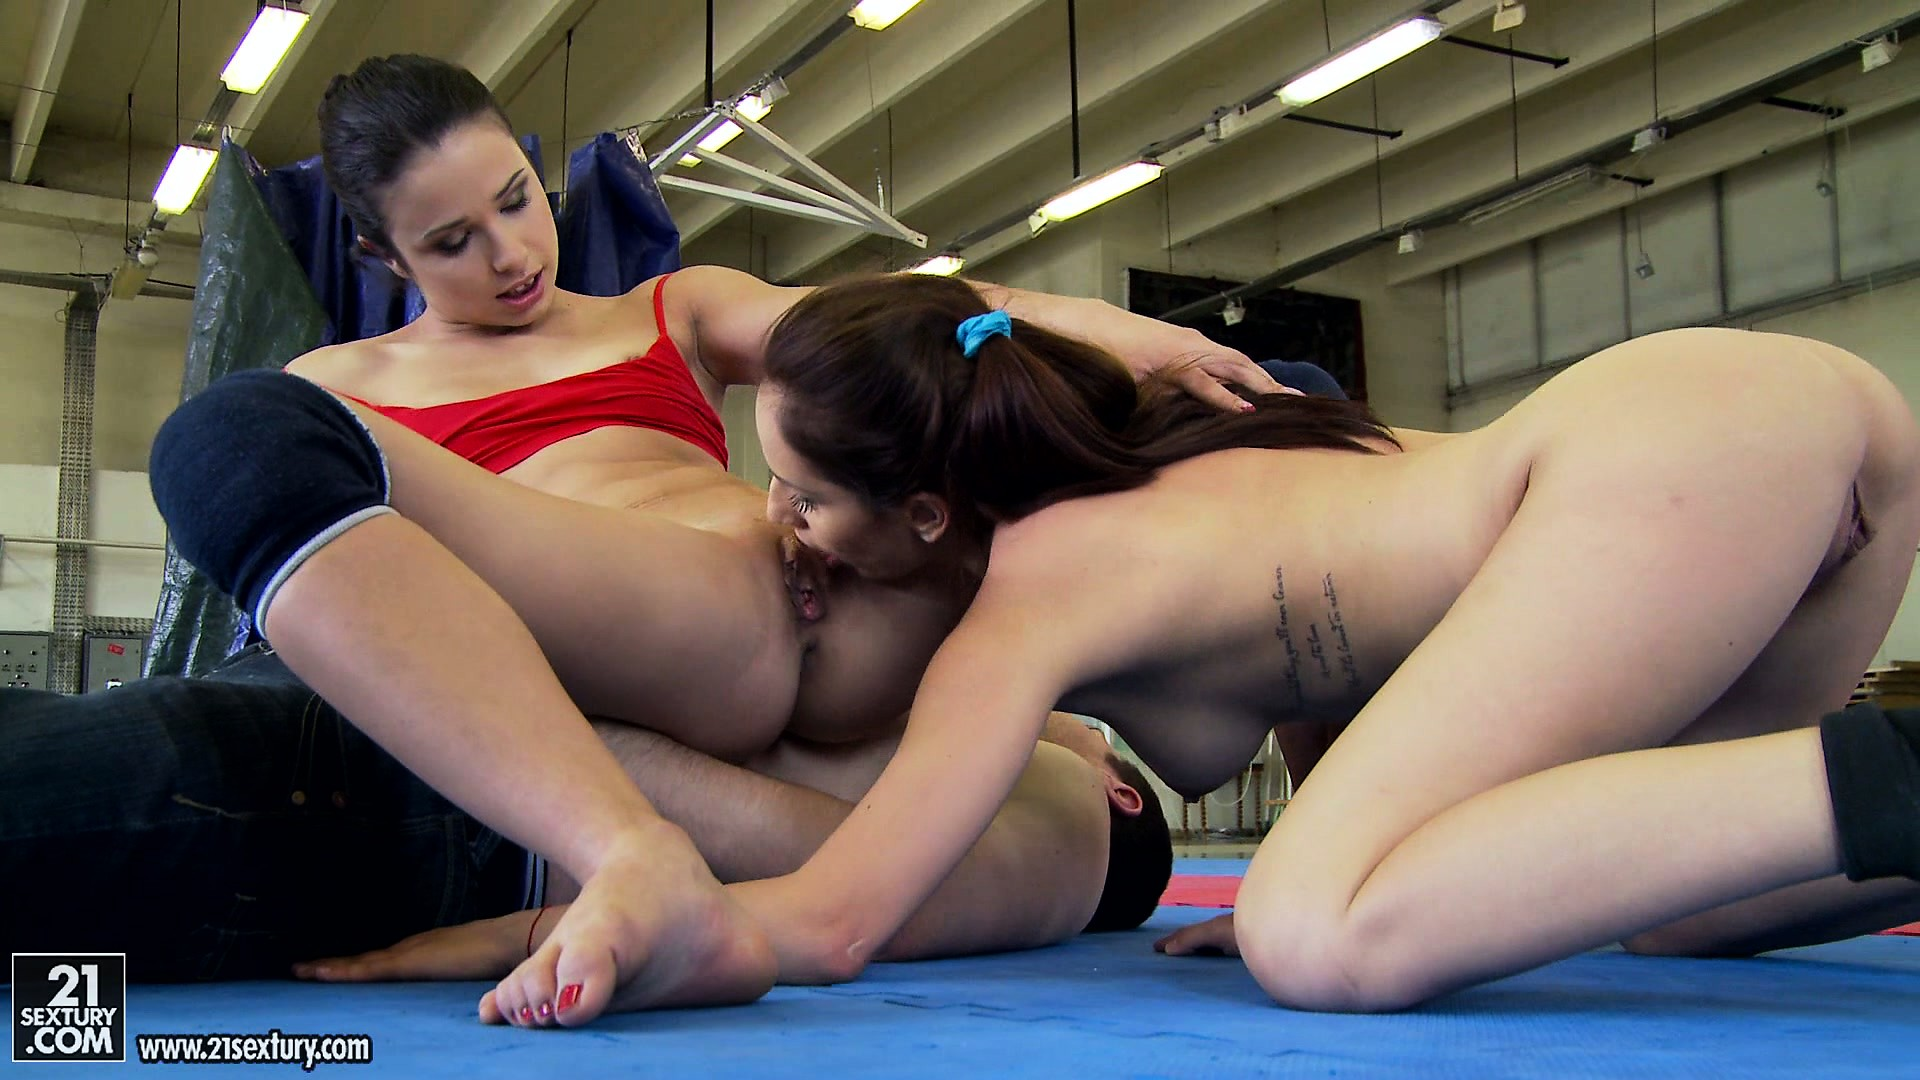 Porno Video of Whoever Wins In This Catfight Gets Her Pussy Licked By The Opponent